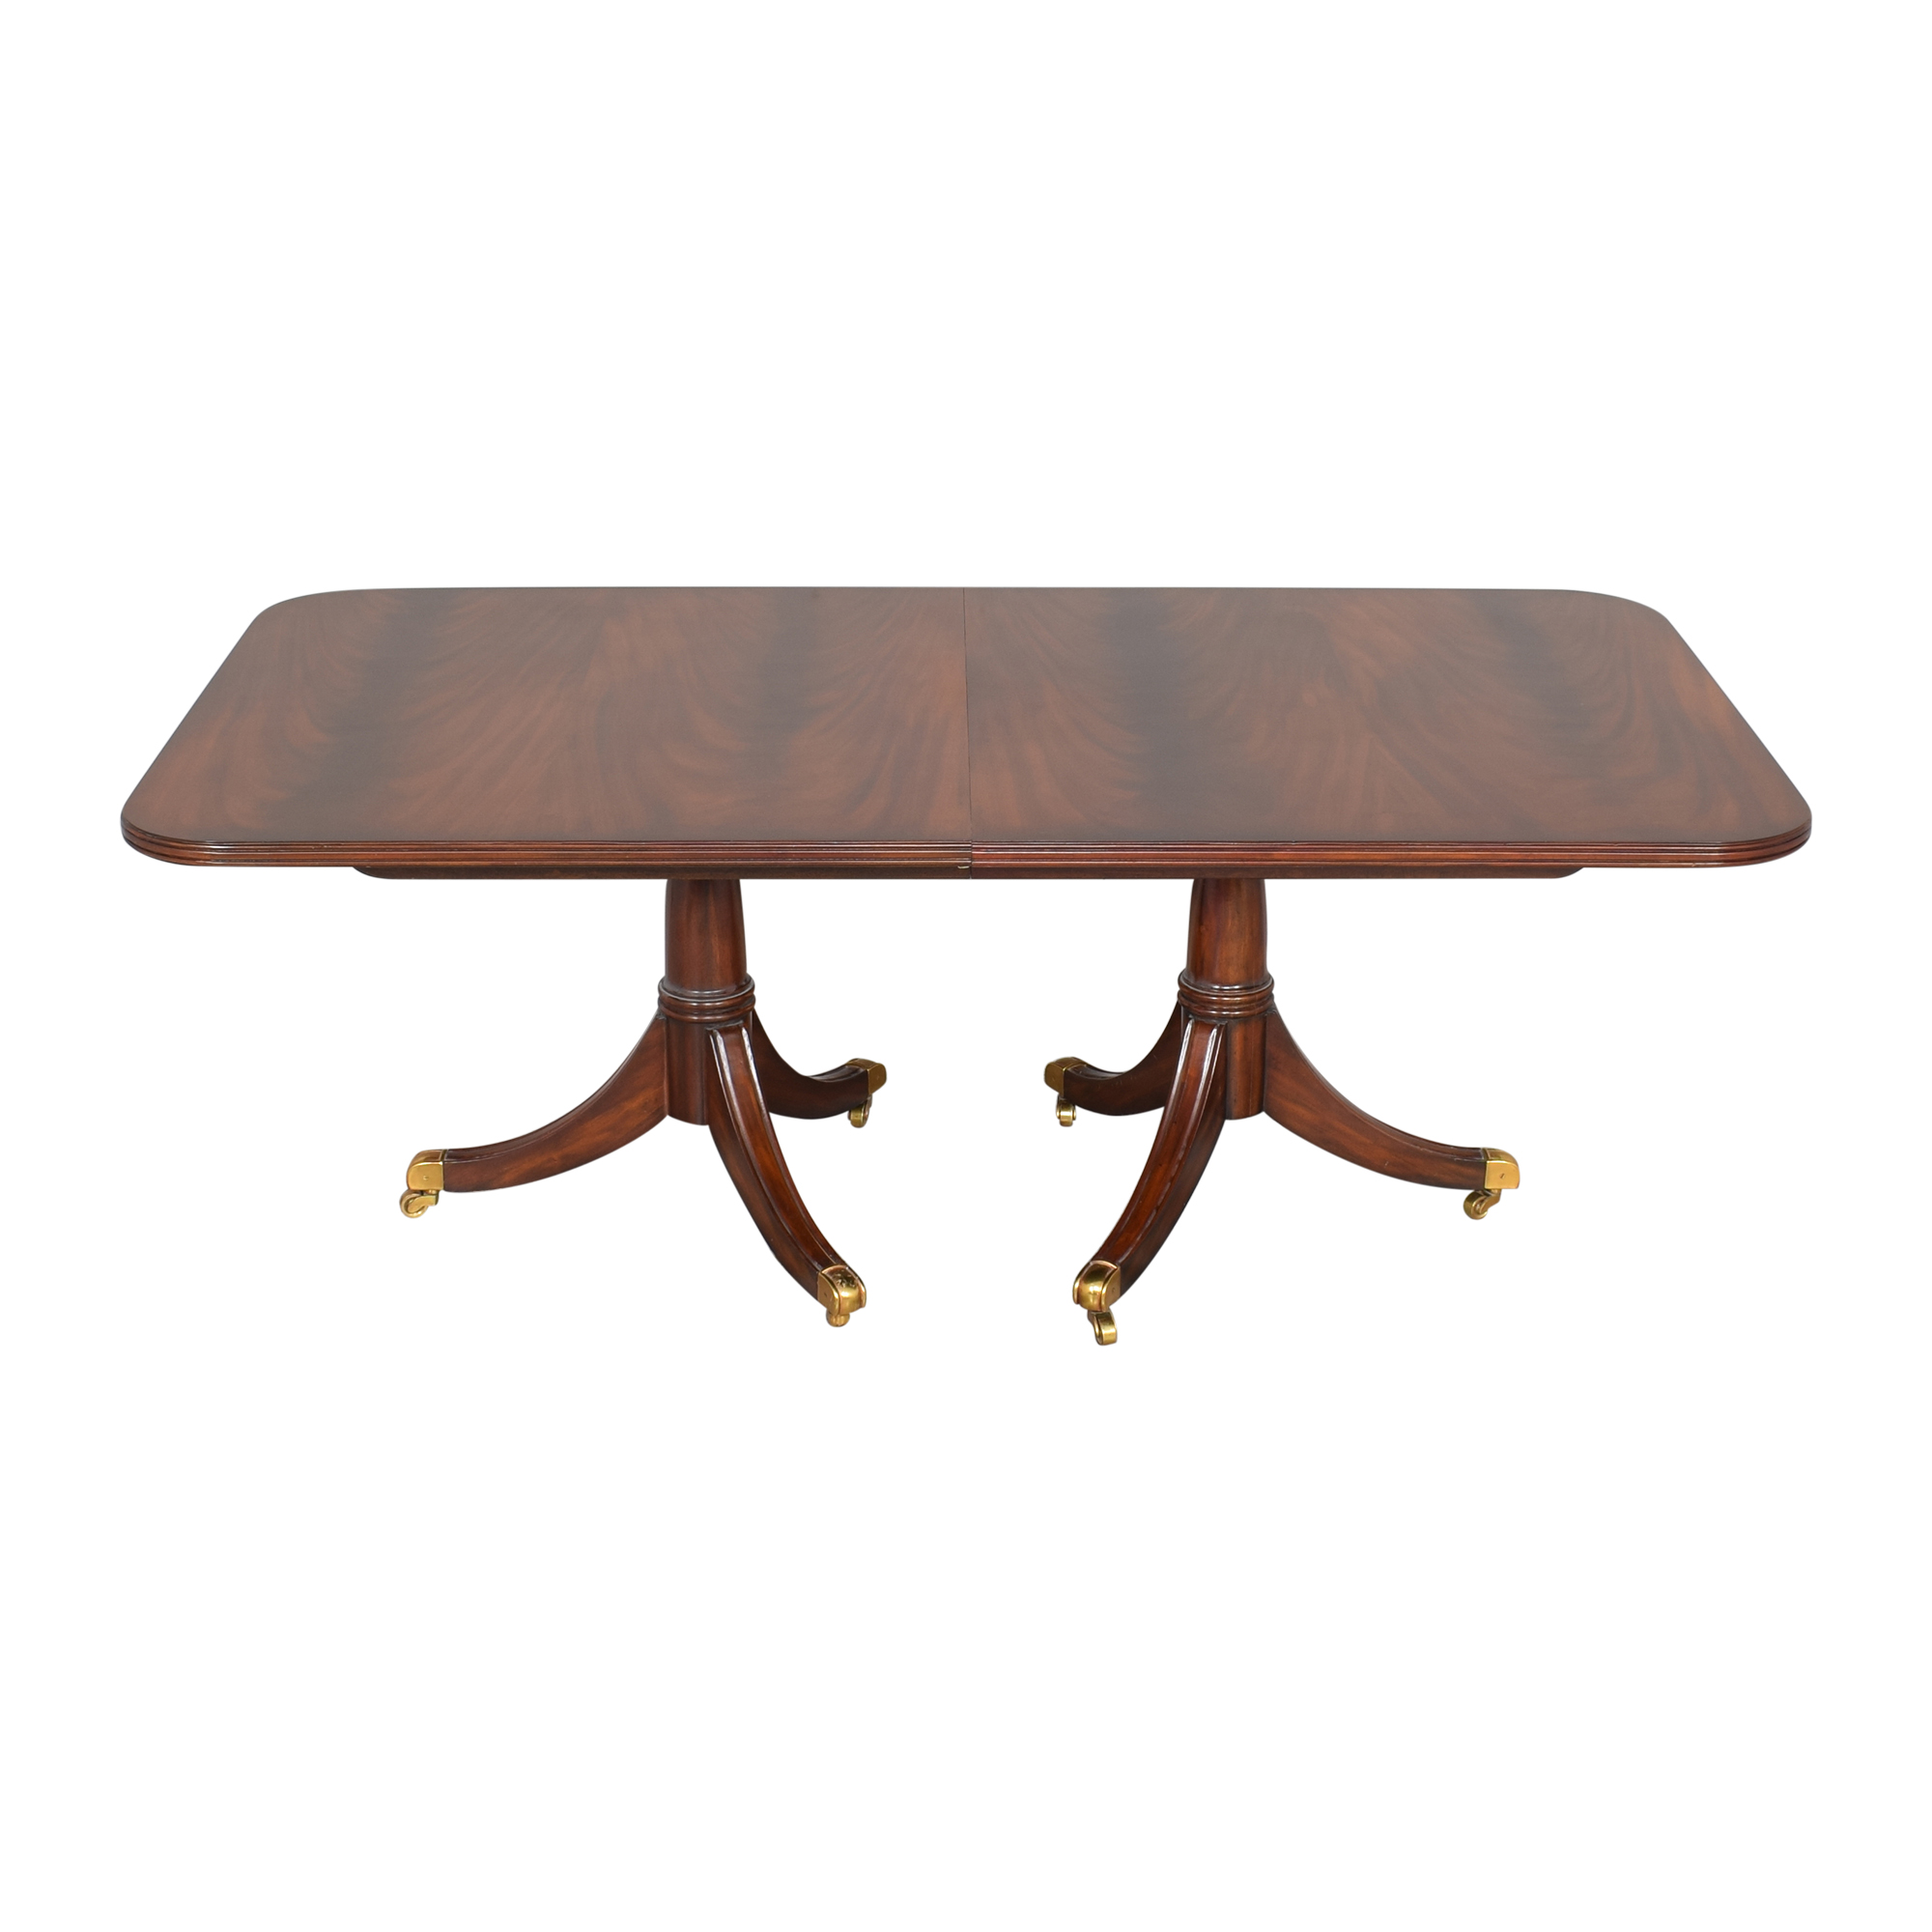 Maitland-Smith Maitland-Smith Double Pedestal Extendable Dining Table on sale